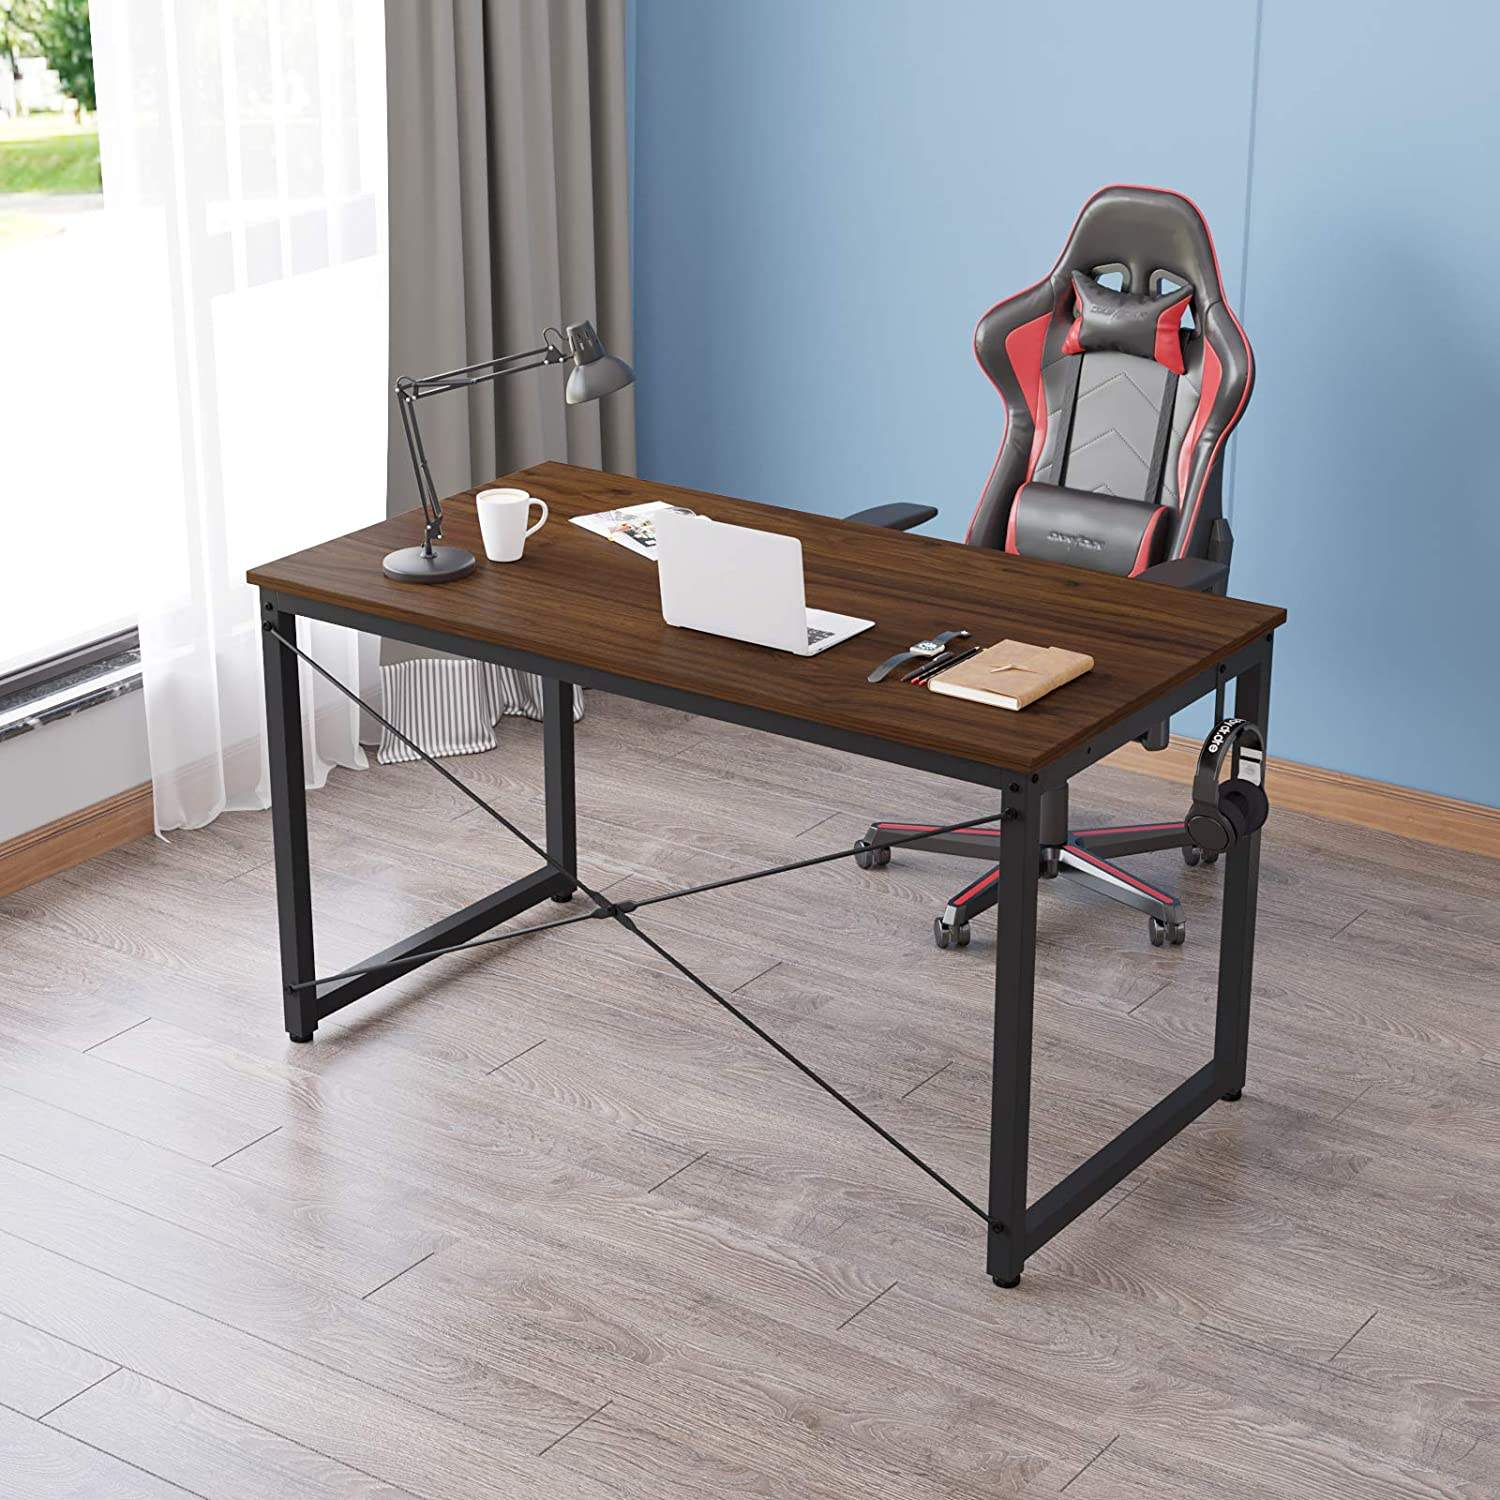 No.2501r Home Office Writing Desk SOHO Computer Desk Metal Frame Modern Simple Style Laptop Table